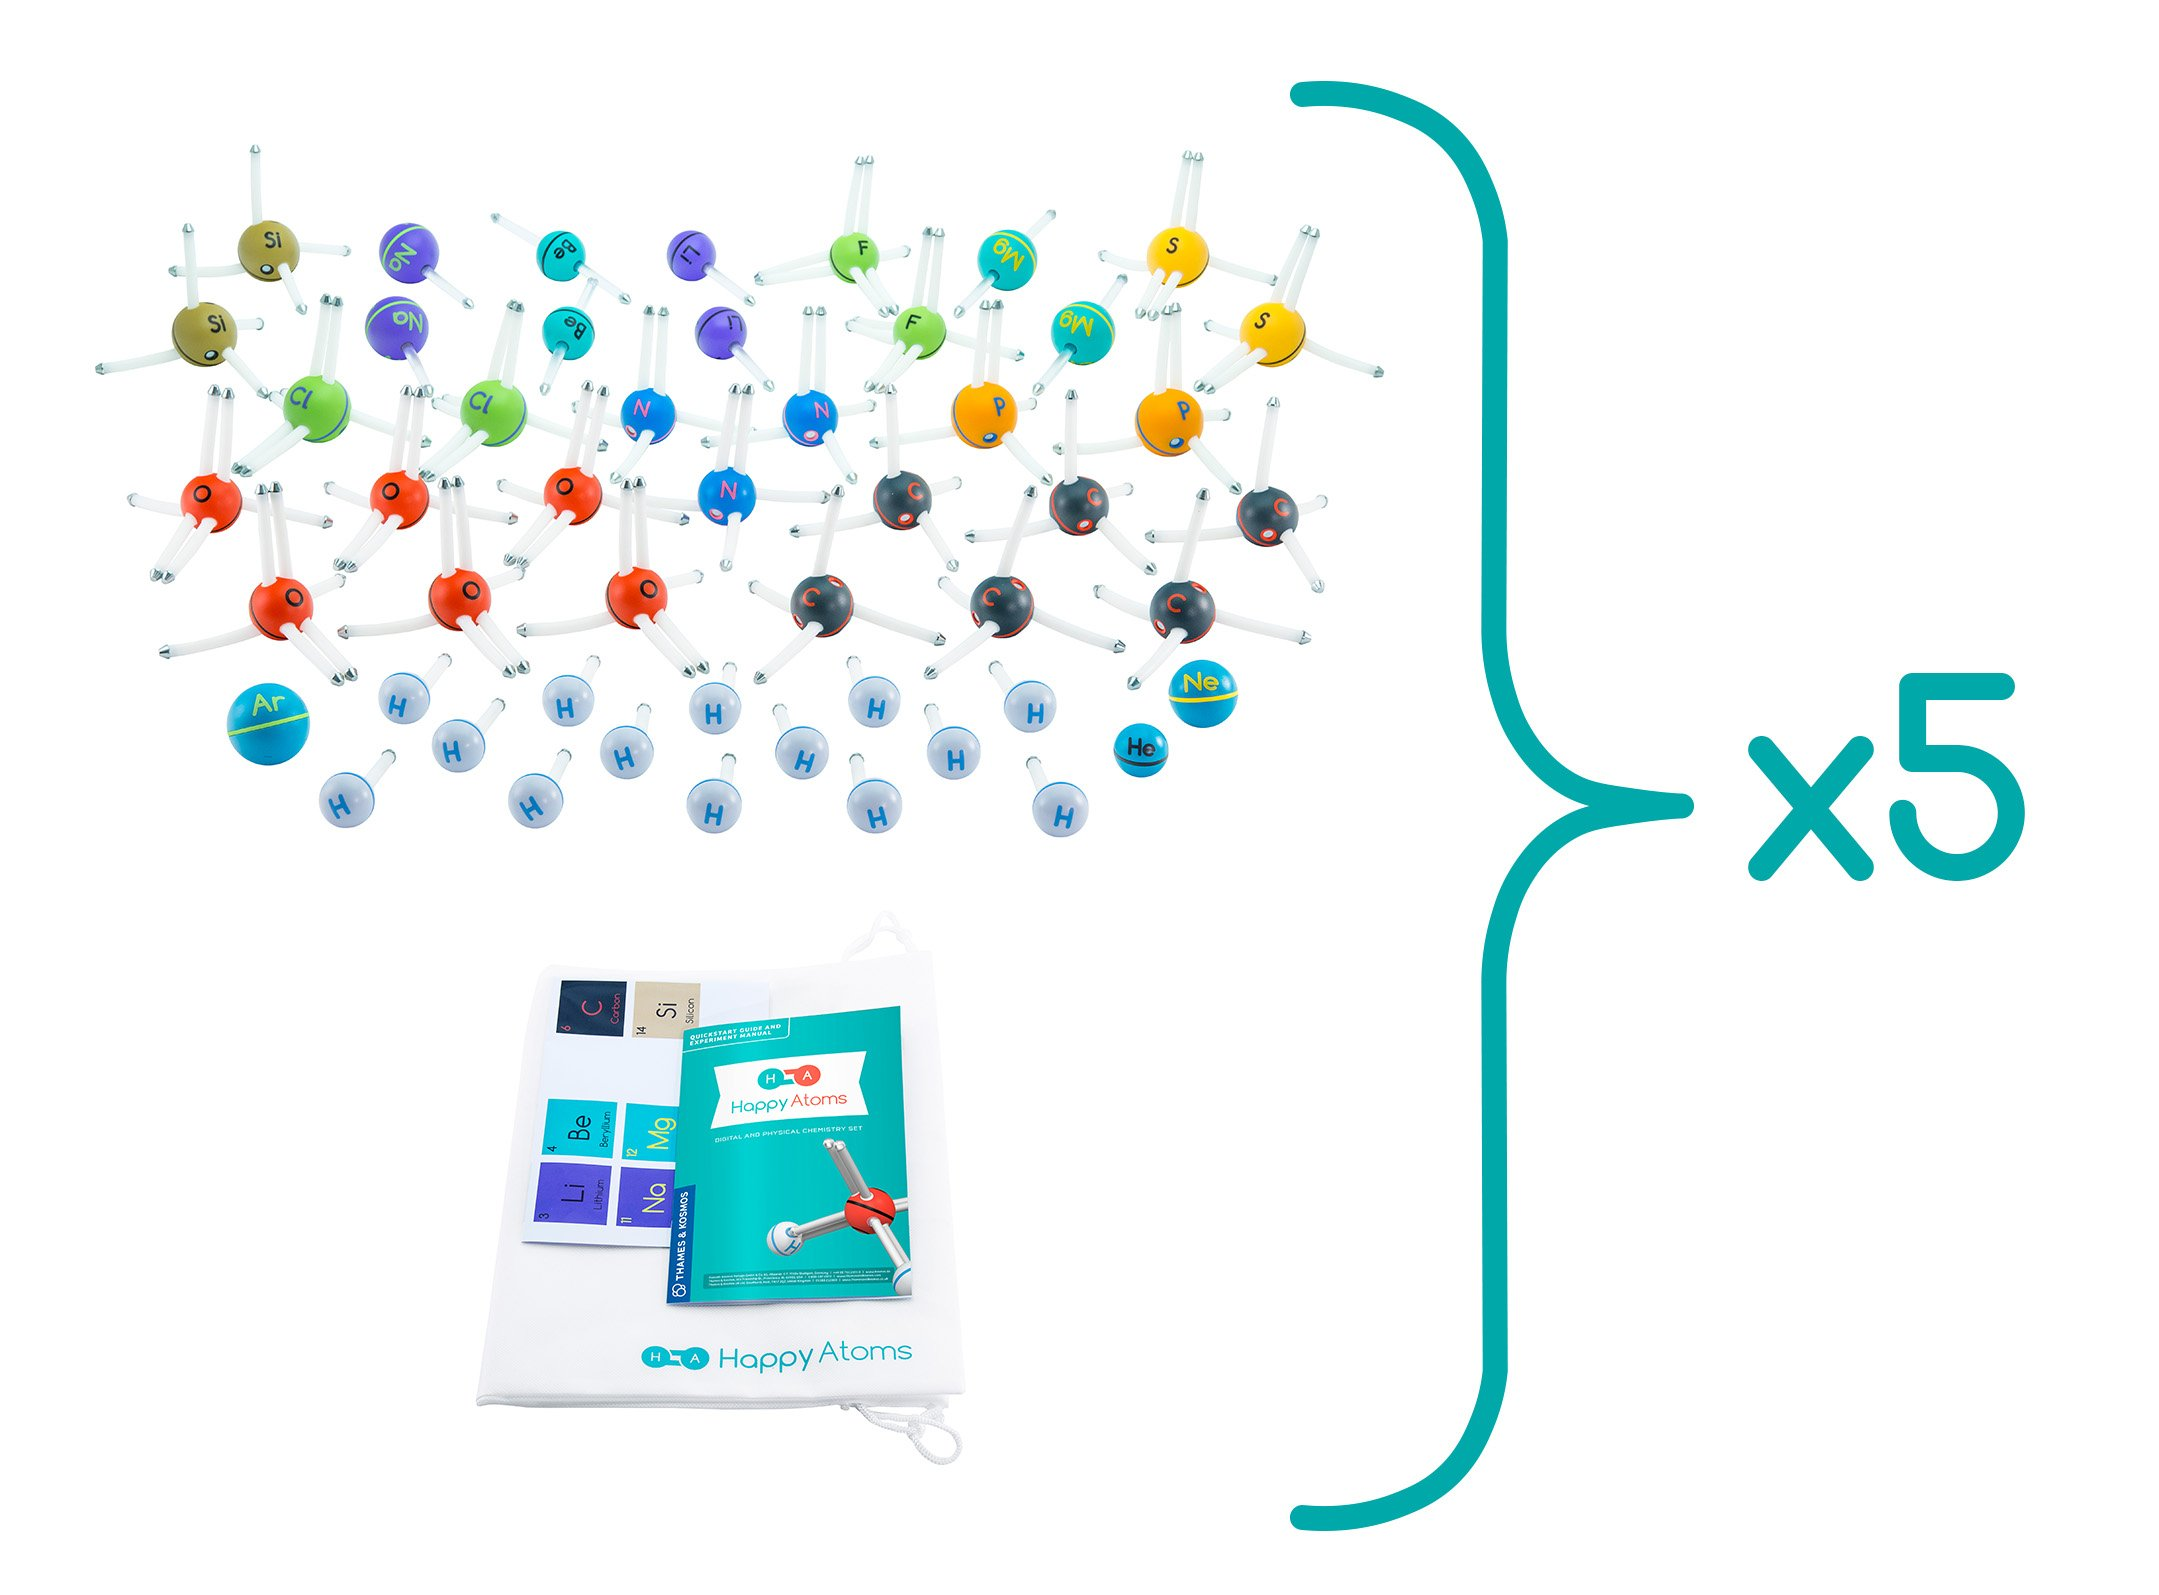 Happy Atoms Magnetic Molecular Modeling Educator Classroom Bundle   5 Sets of 50 Atoms   Create 17, 593 Molecules   216 Activities   Free Curriculum & App Ios, Android, Kindle   Student Tested by Thames & Kosmos (Image #2)